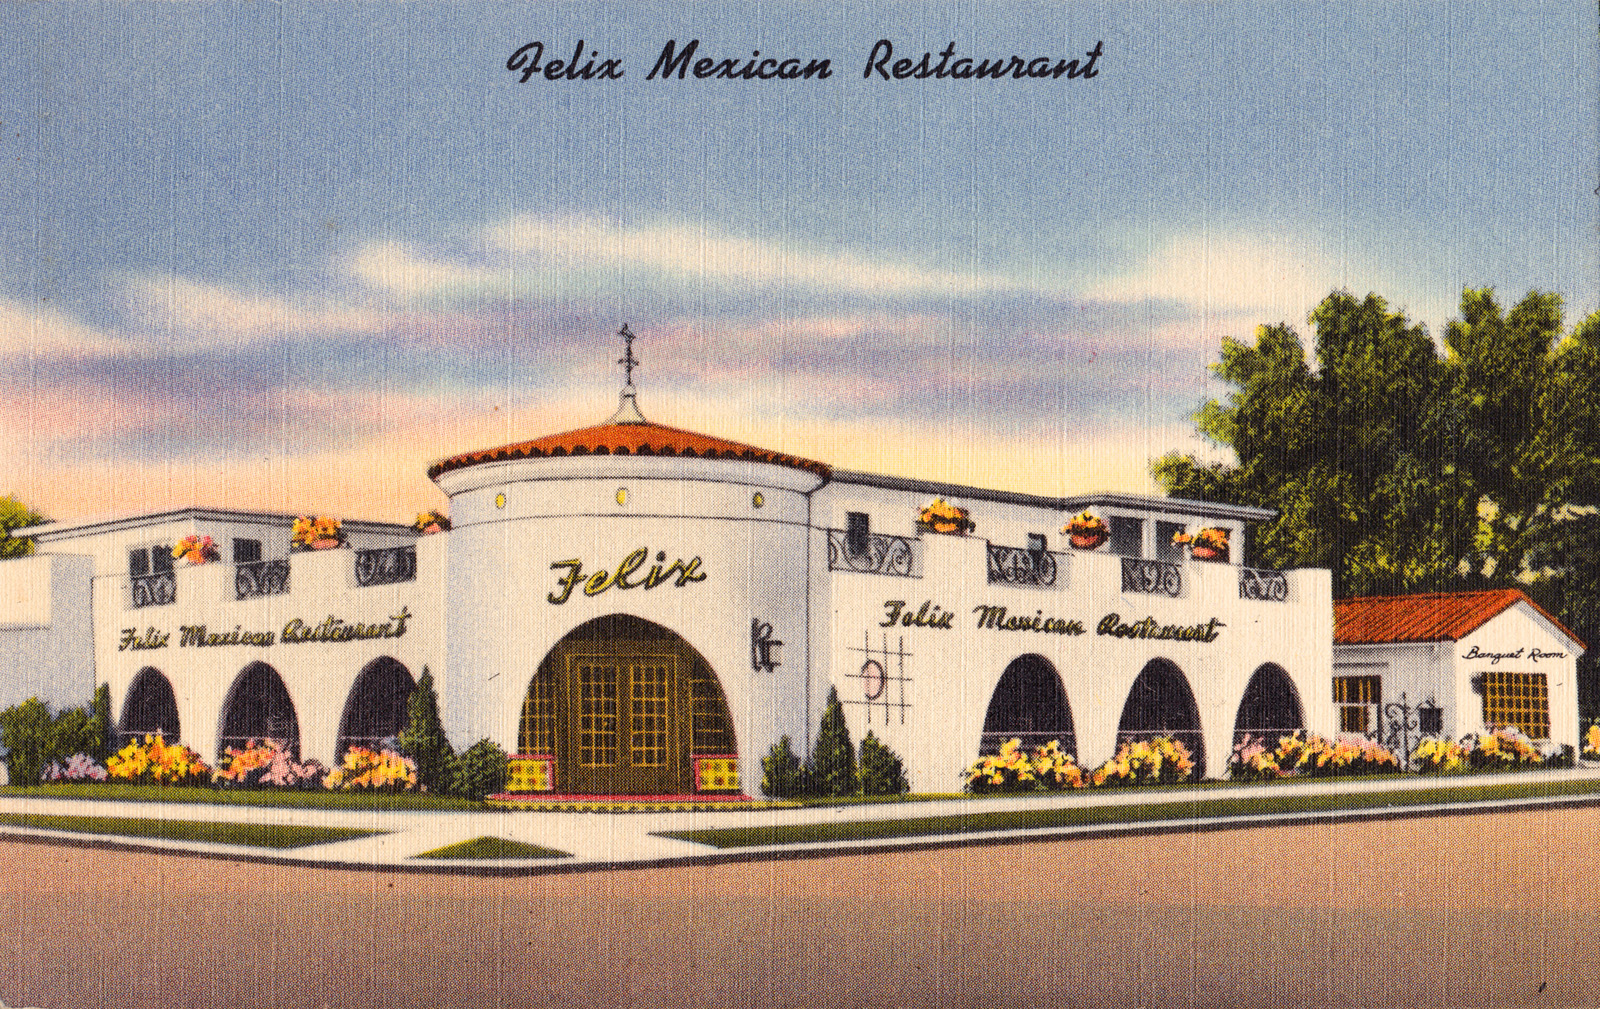 Montrose Mexican Restaurants California